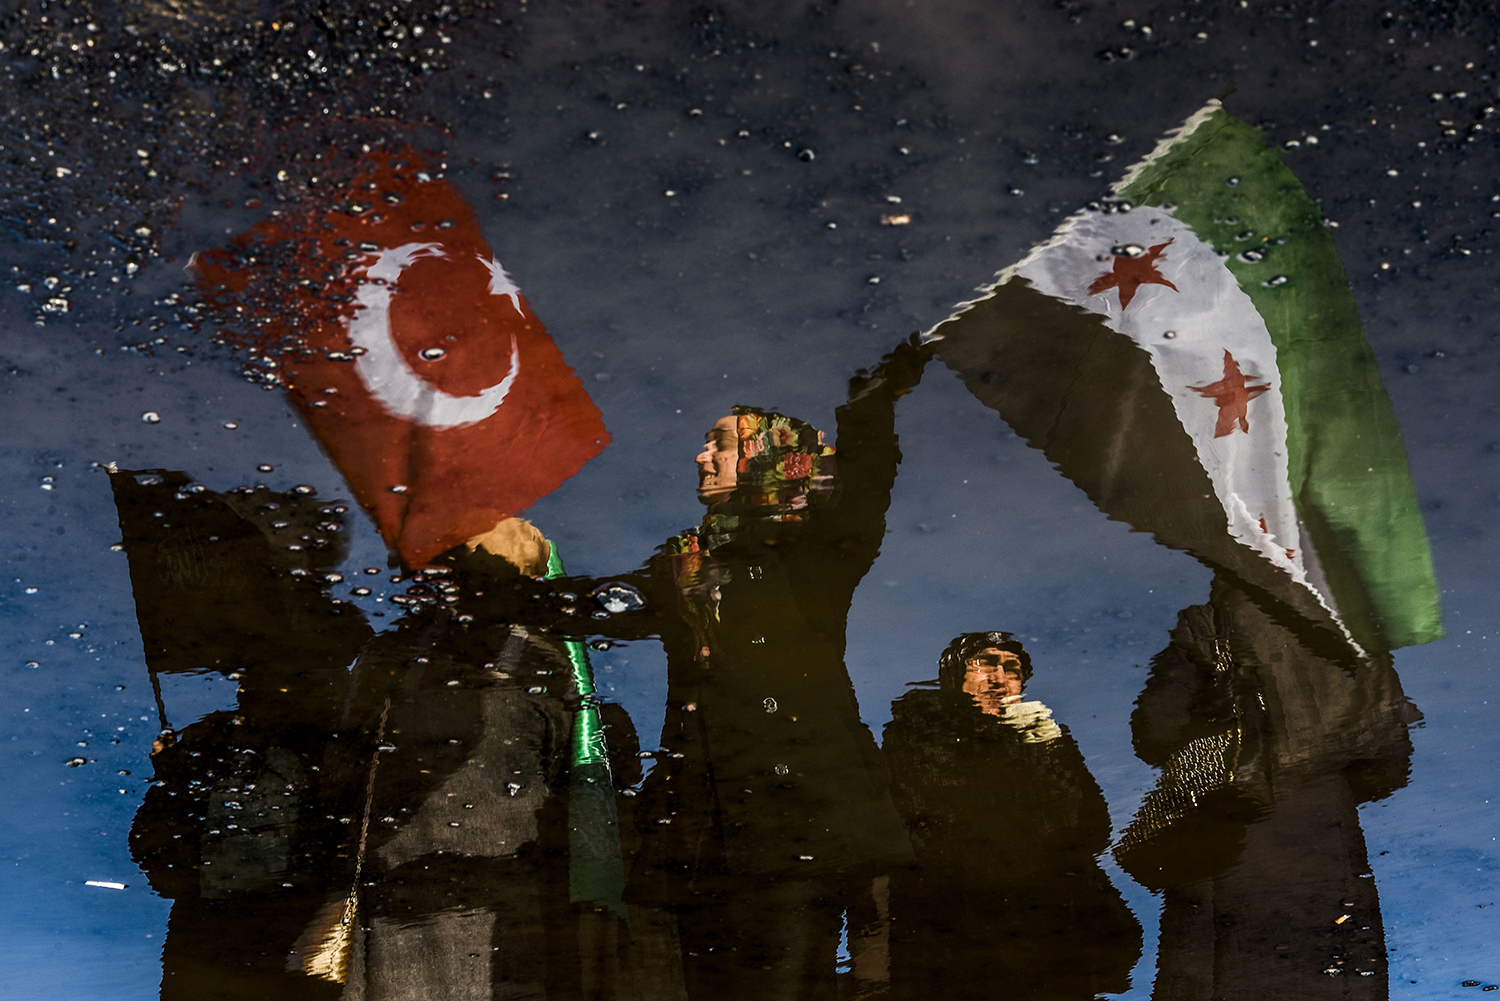 A reflection on waste liquid shows a woman wawing Turkish and Free Syrian flags as an aid convoy to Aleppo organized by IHH Humanitarian Relief Foundation is about to leave, on December 14, 2016 in Istanbul. Turkey's aid campaign for the besieged people of Aleppo continued with several nongovernmental organizations sending food, water and clothing. / AFP PHOTO / OZAN KOSE / TT / kod 444